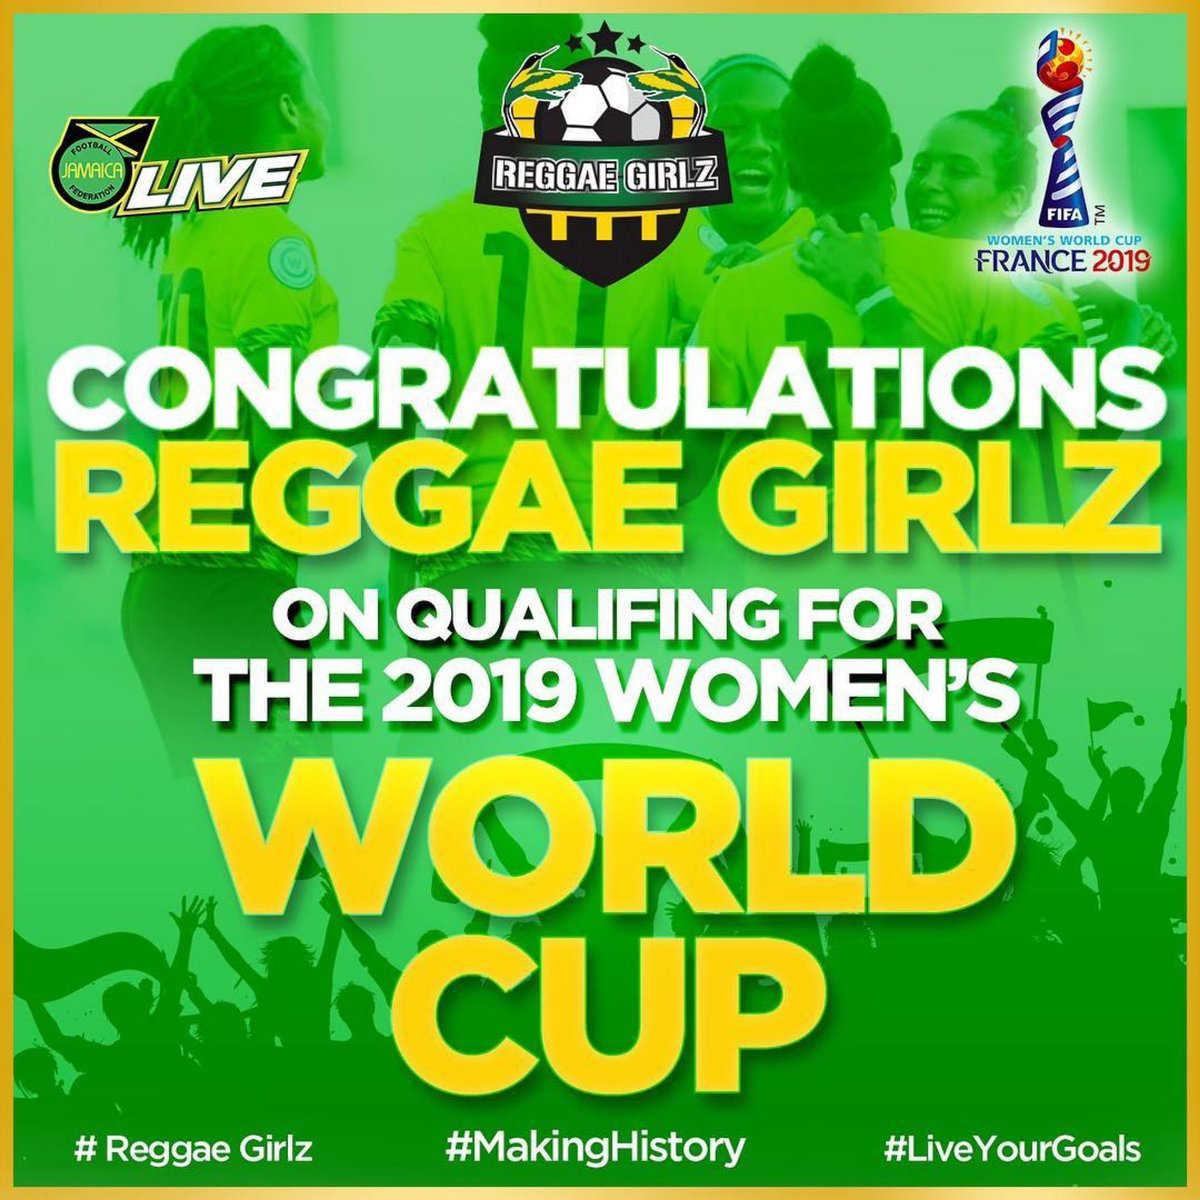 the gifts just keep on coming today another great birthday present for me 😉 thank you @ReggaeGirlzJA big up 🇯🇲🇯🇲🇯🇲👍🏾👍🏾🎉🎉🎉 time for more #celebrations 😃😀